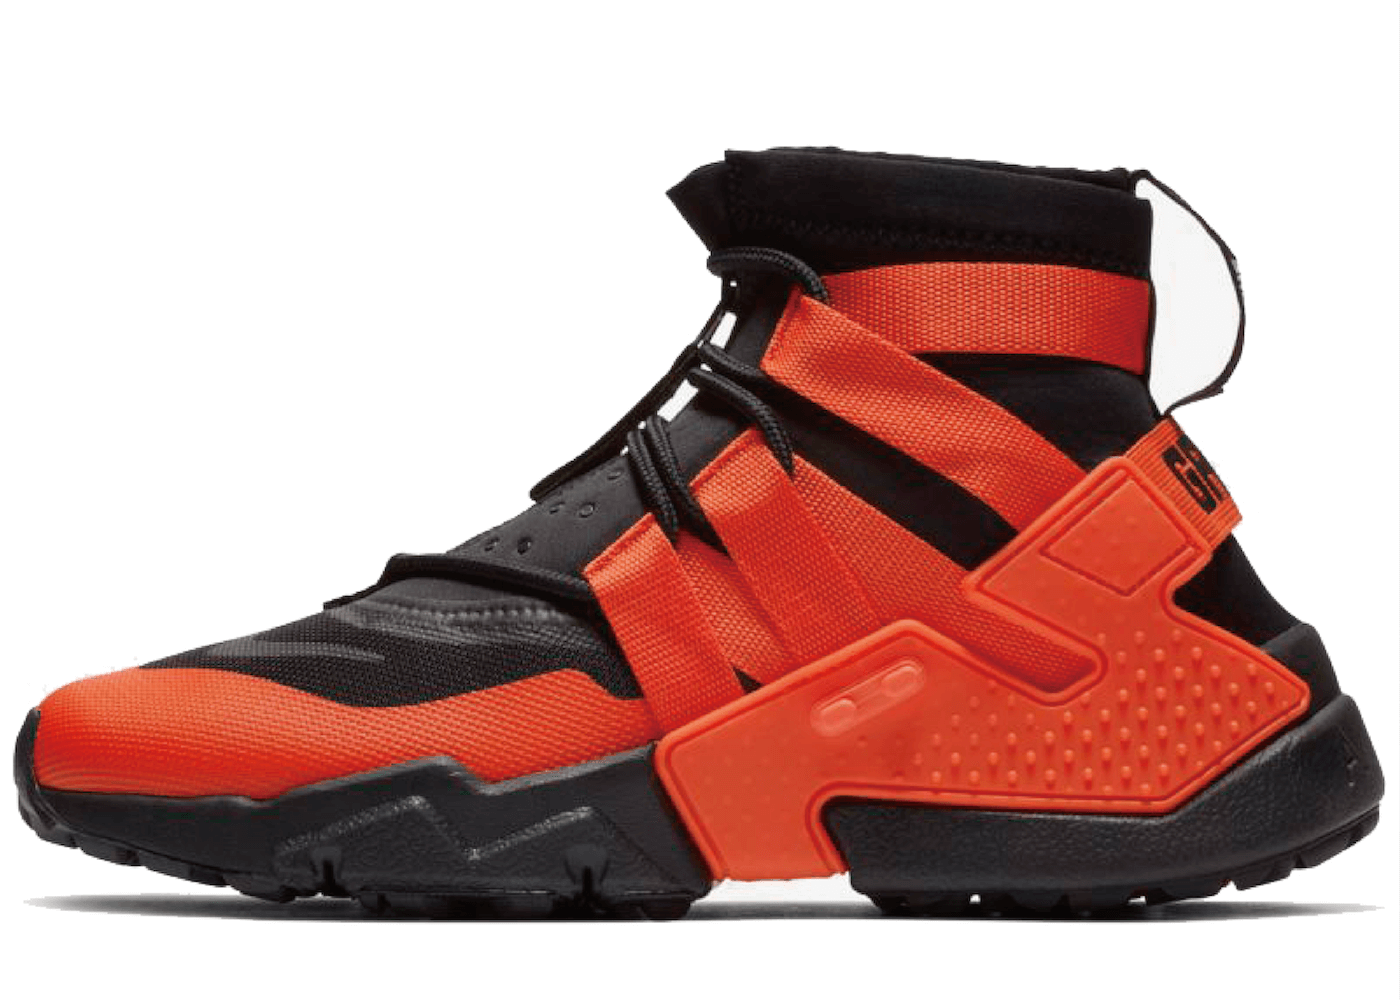 Nike Air Huarache Grip Black Team Orangeの写真